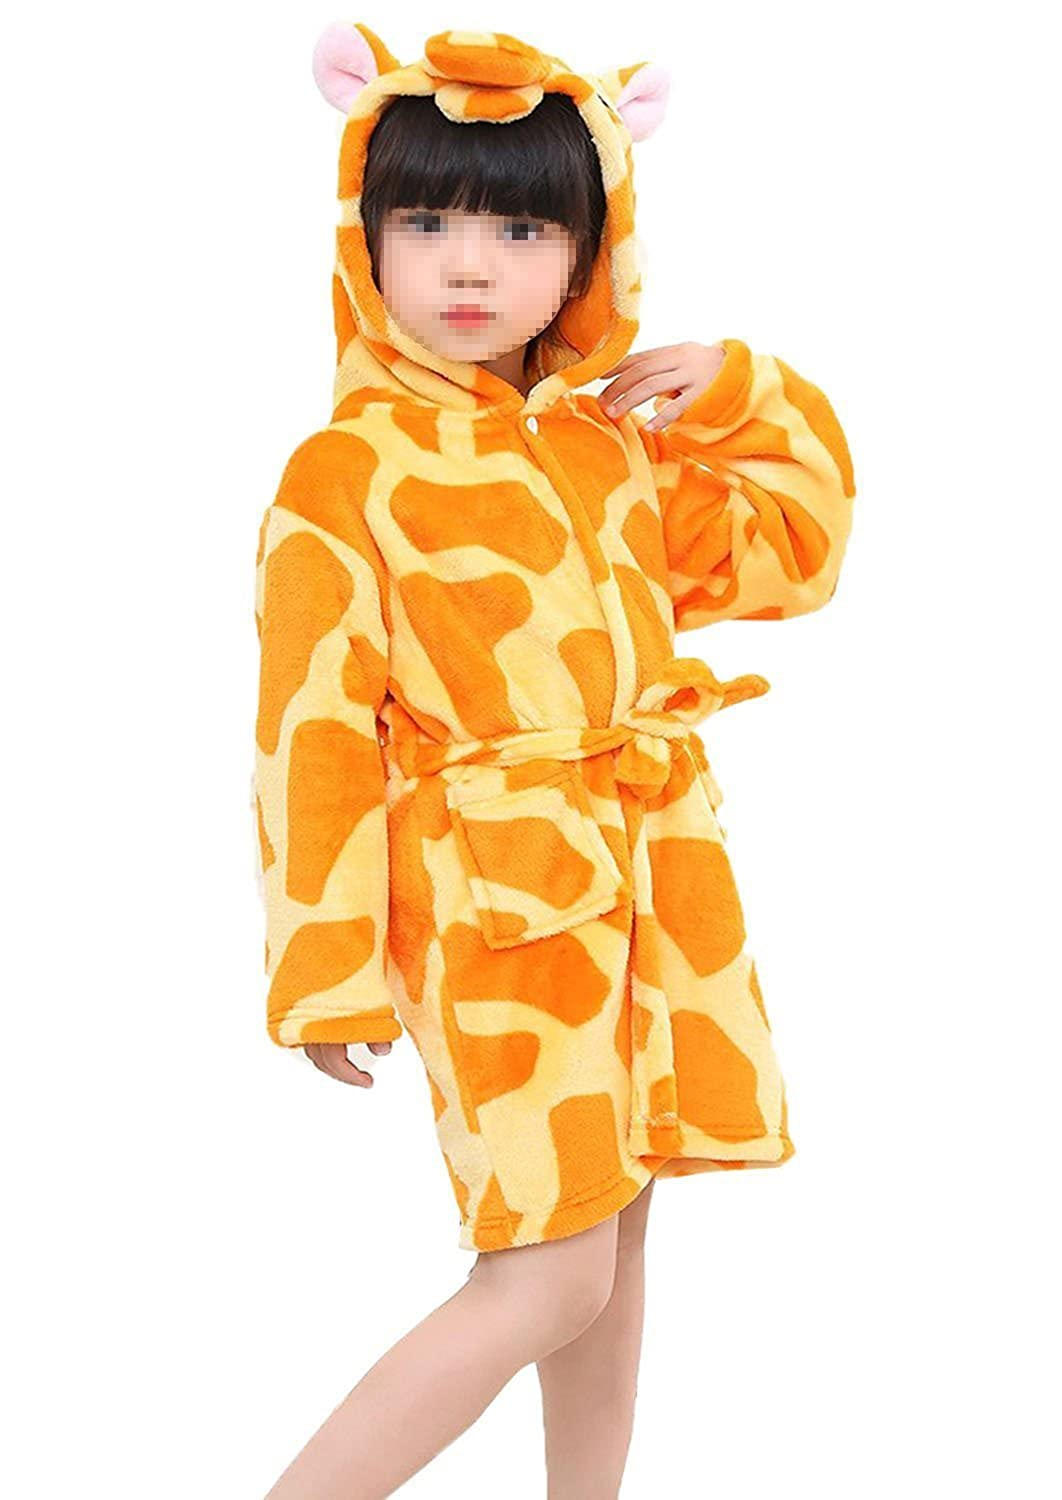 Lazutom Kid's Hooded Bathrobe Fleece Sleepwear Comfy Sleep Robe